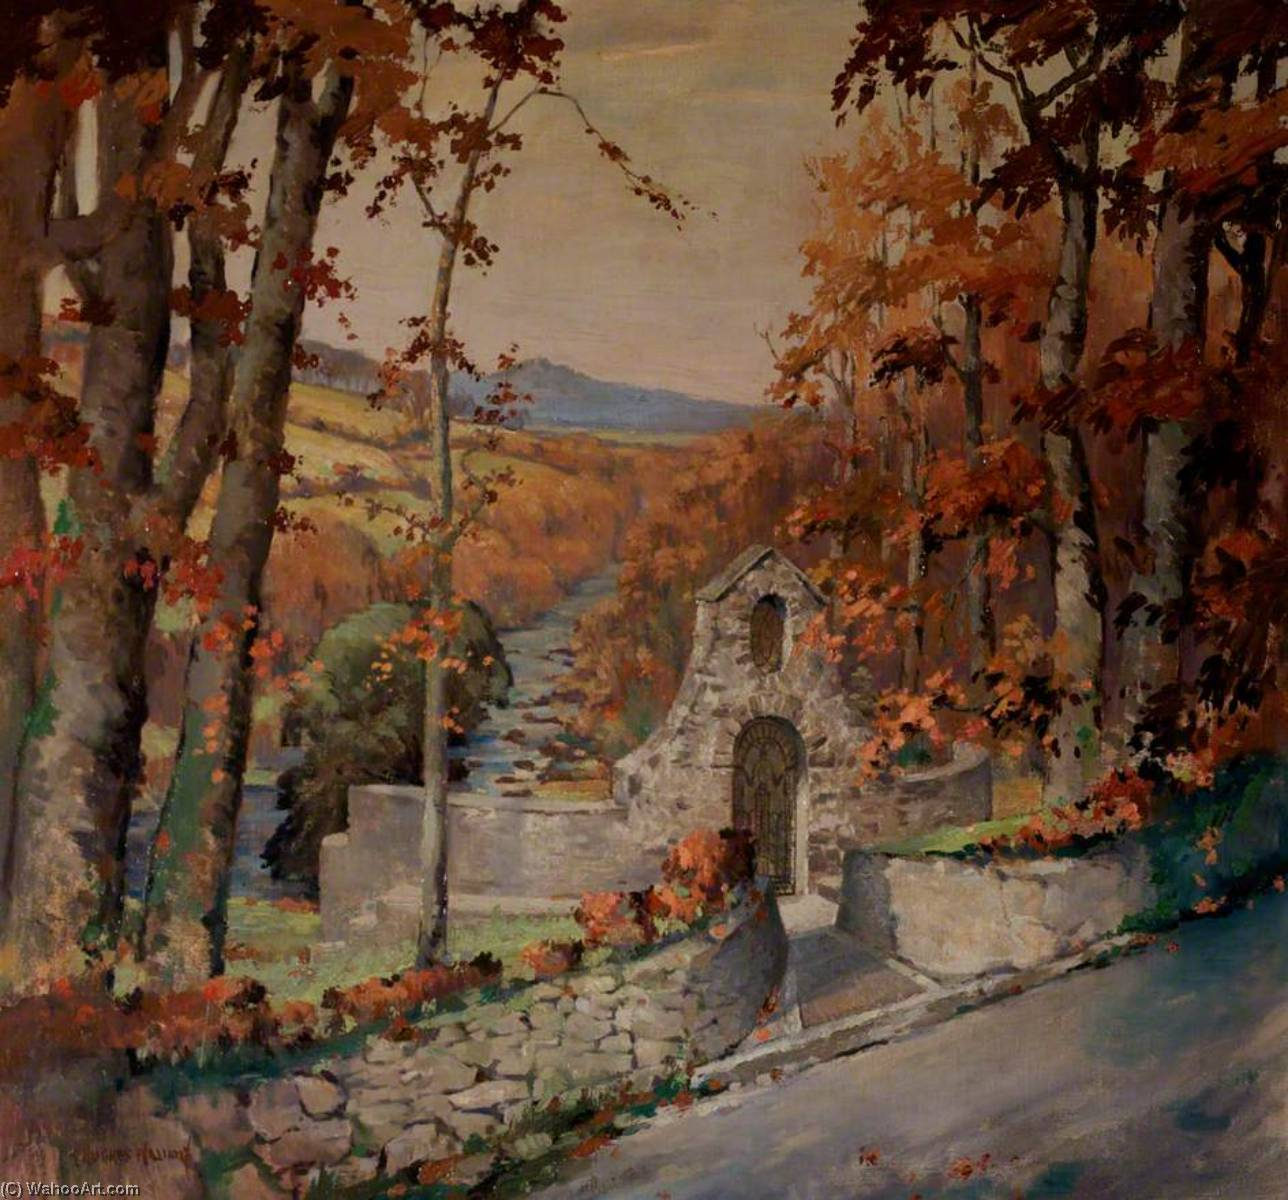 La tombe de lloyd george, huile sur toile de Harry Hughes Williams